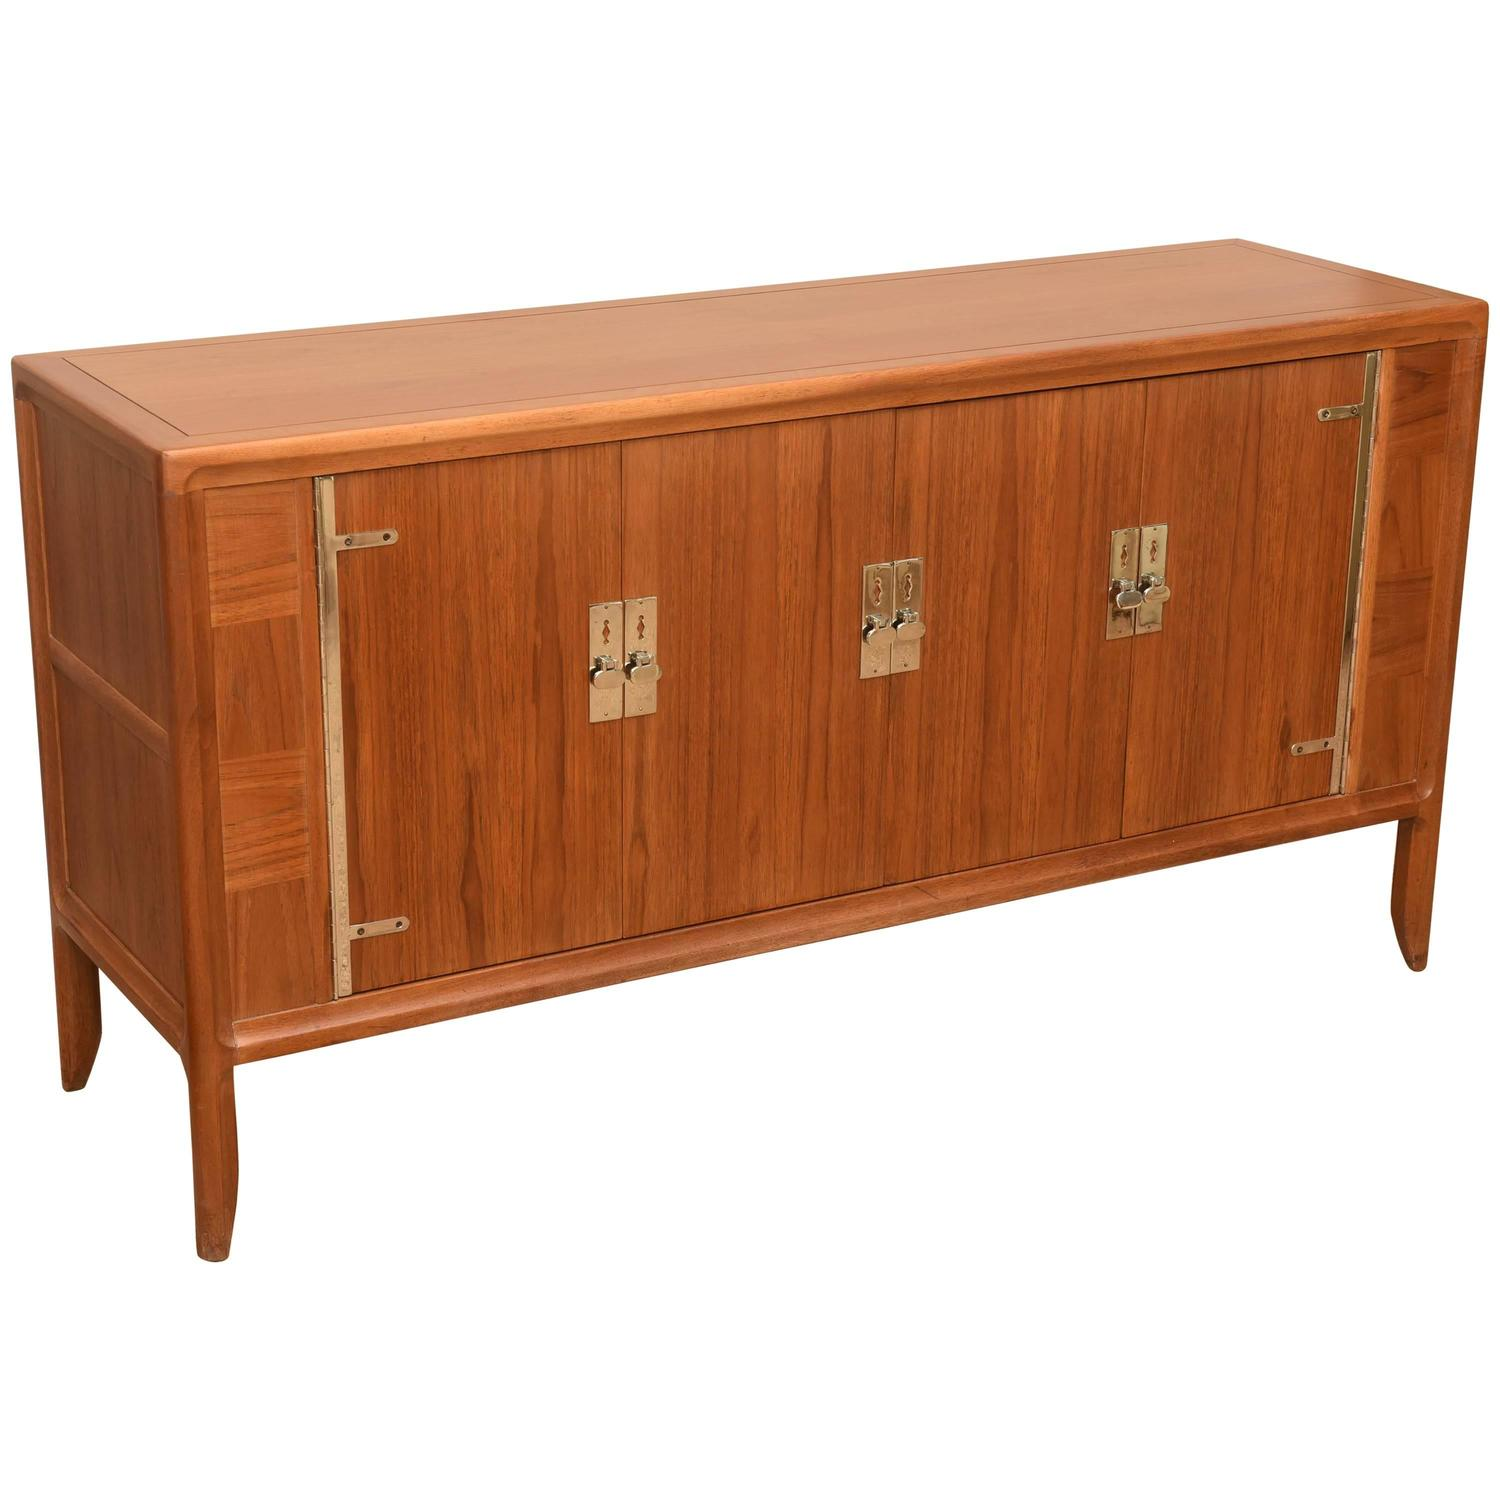 Modern Cabinet By Mastercraft For Sale At 1stdibs